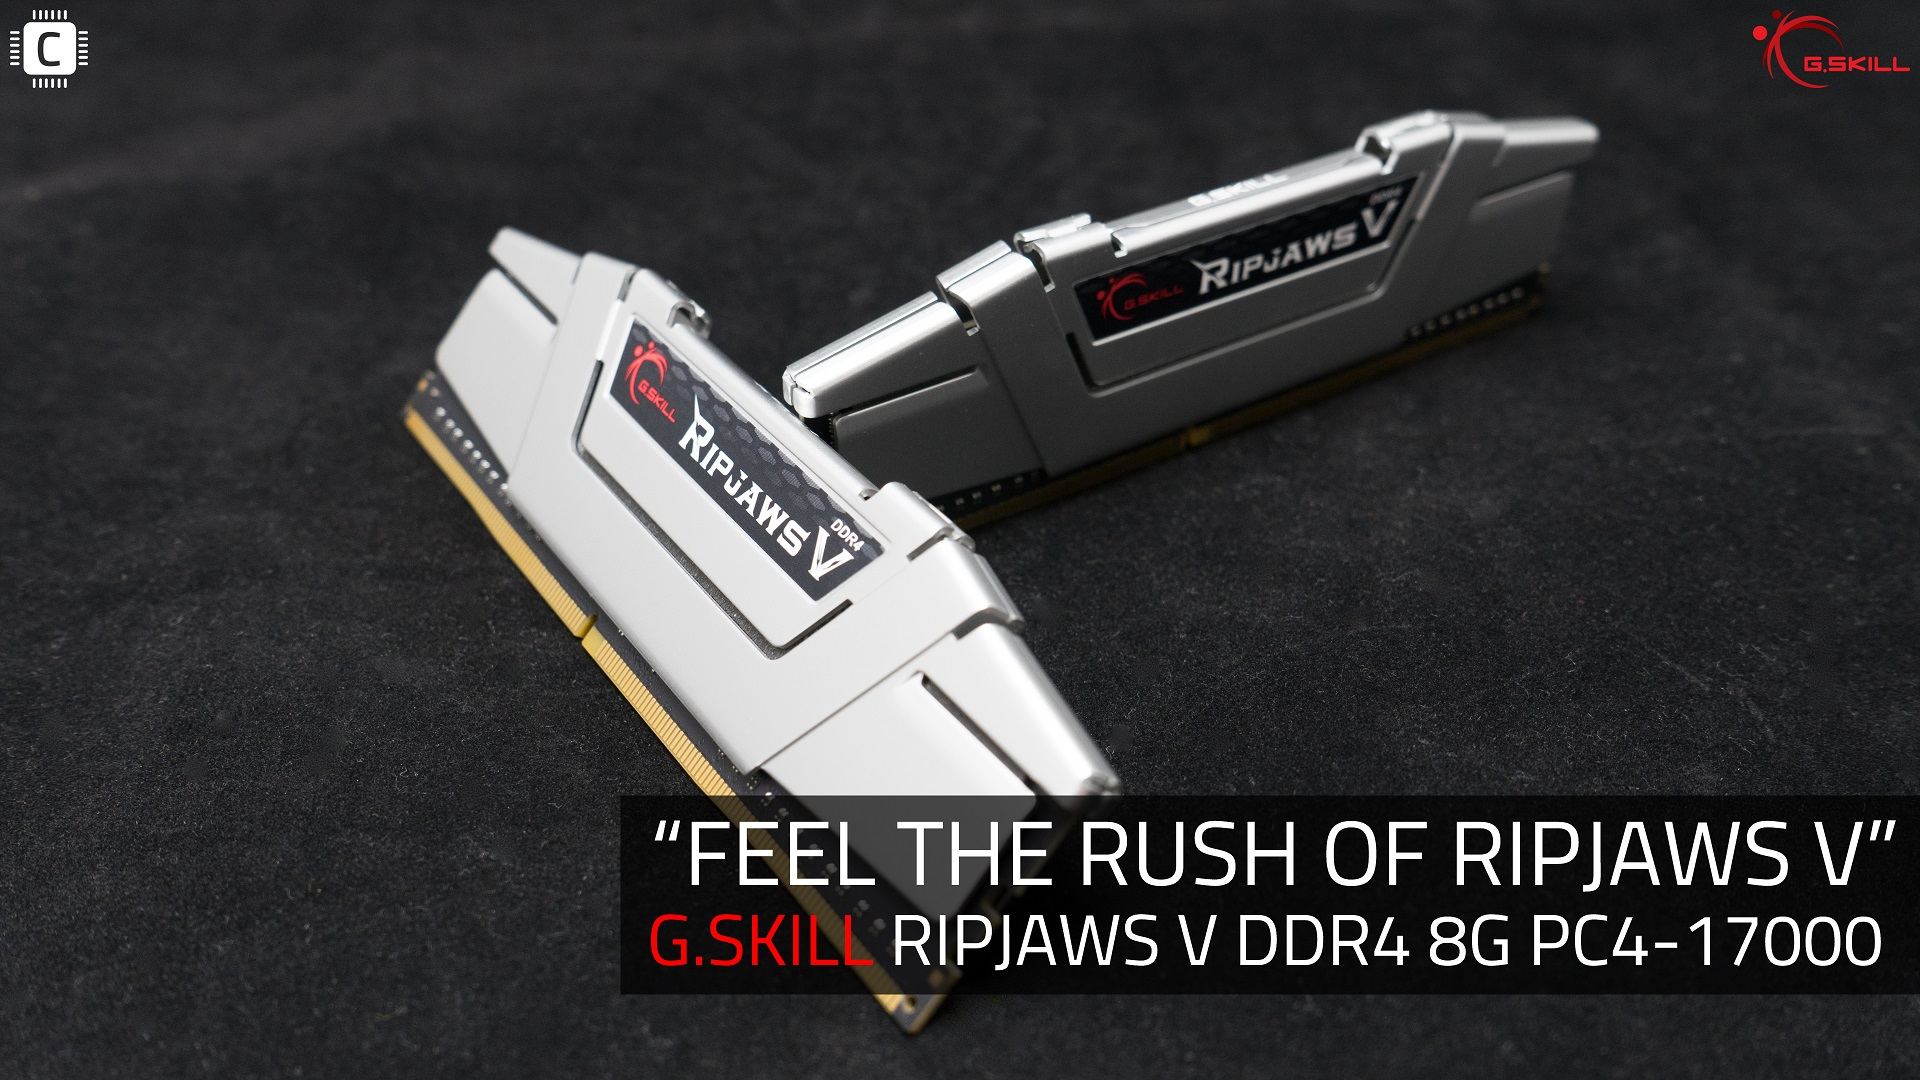 G.SKILL RIPJAWS V DDR4 8G PC4-17000 실버